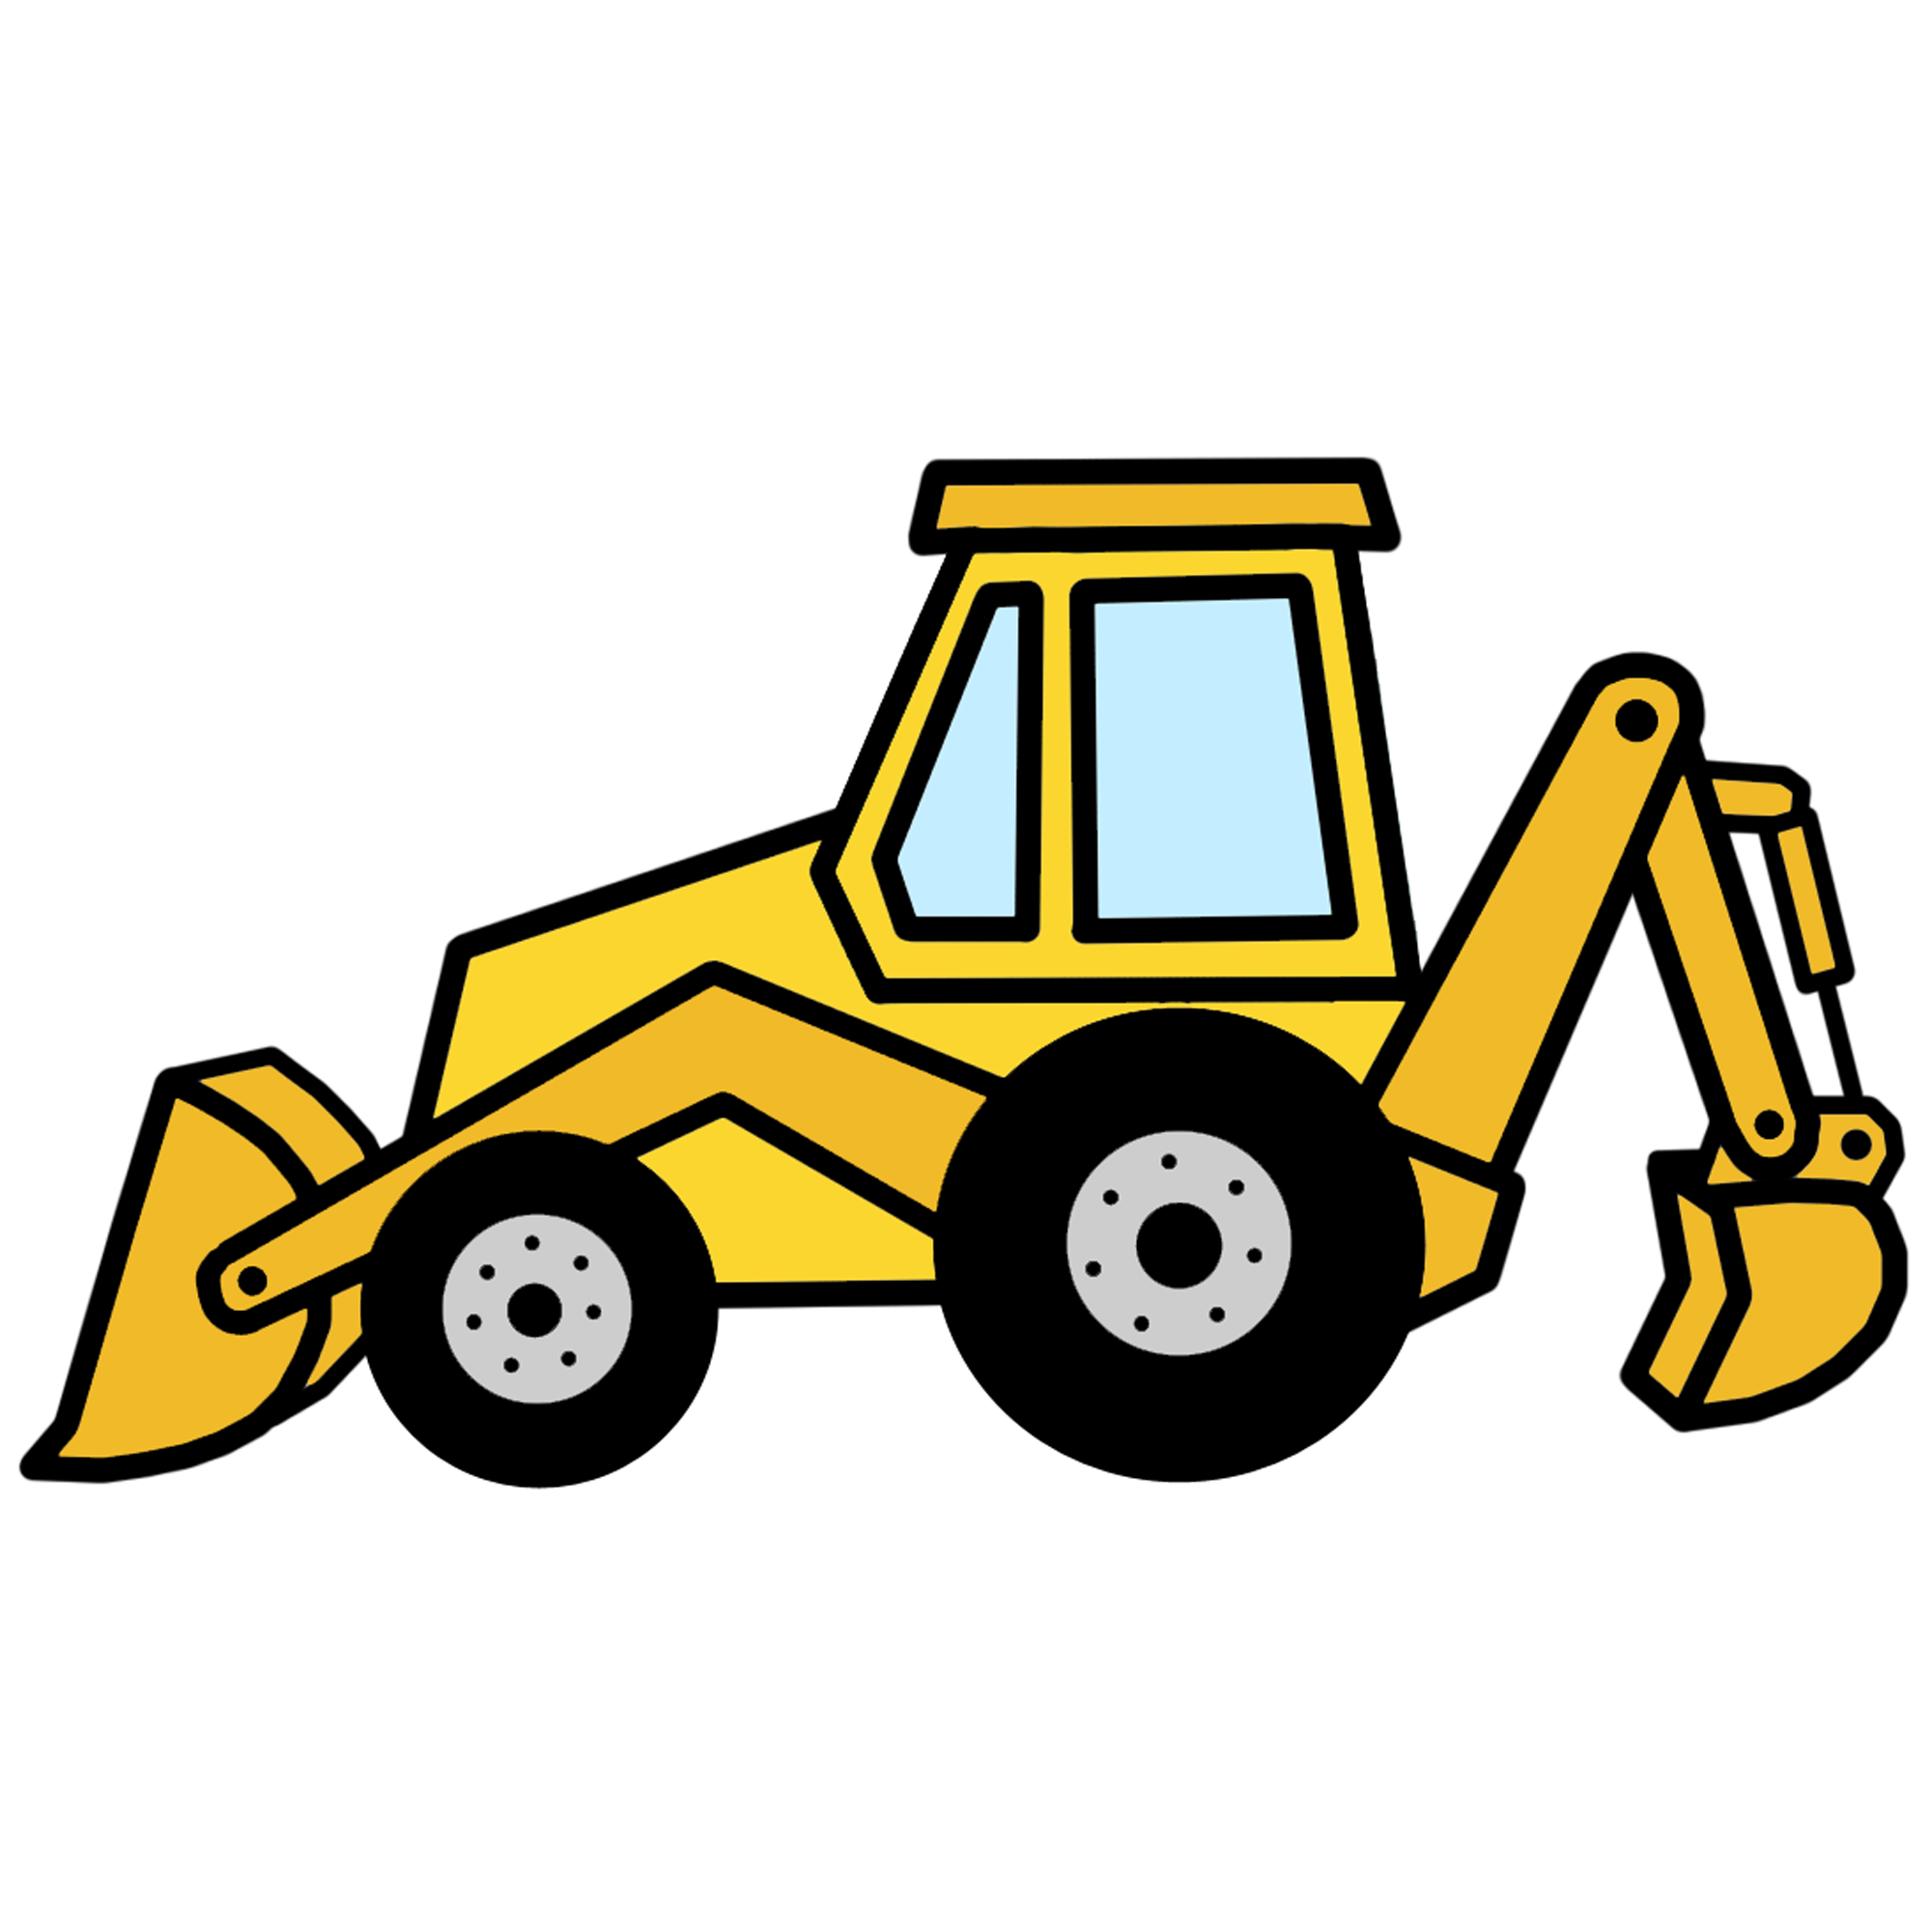 2000x2000 Collection Of Digger Clipart High Quality, Free Cliparts